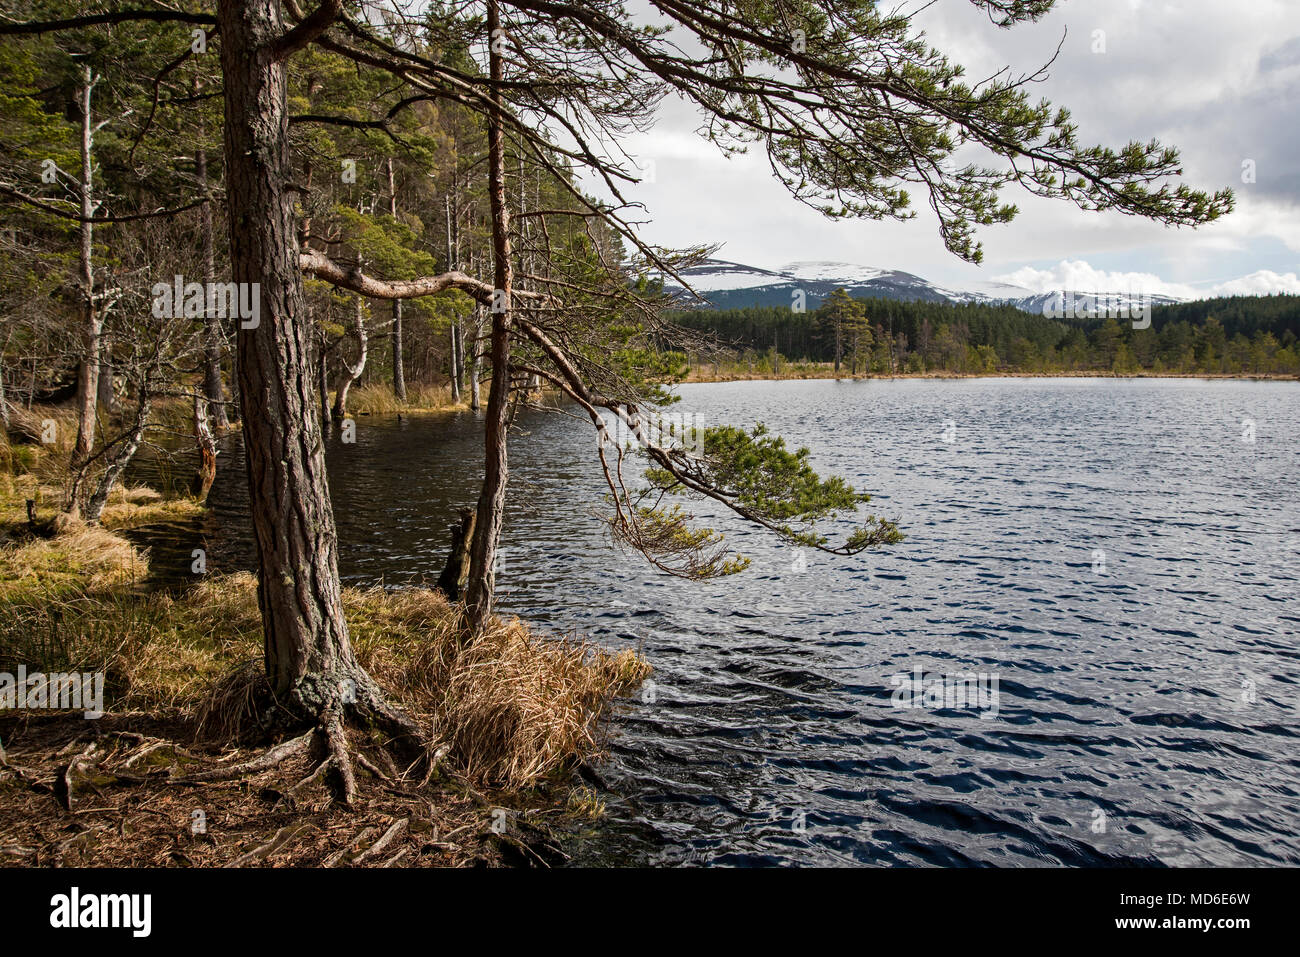 Uath Lochans, Inshriach Forest, Glen Feshie south of Kincraig in Cairngorm National Park. - Stock Image